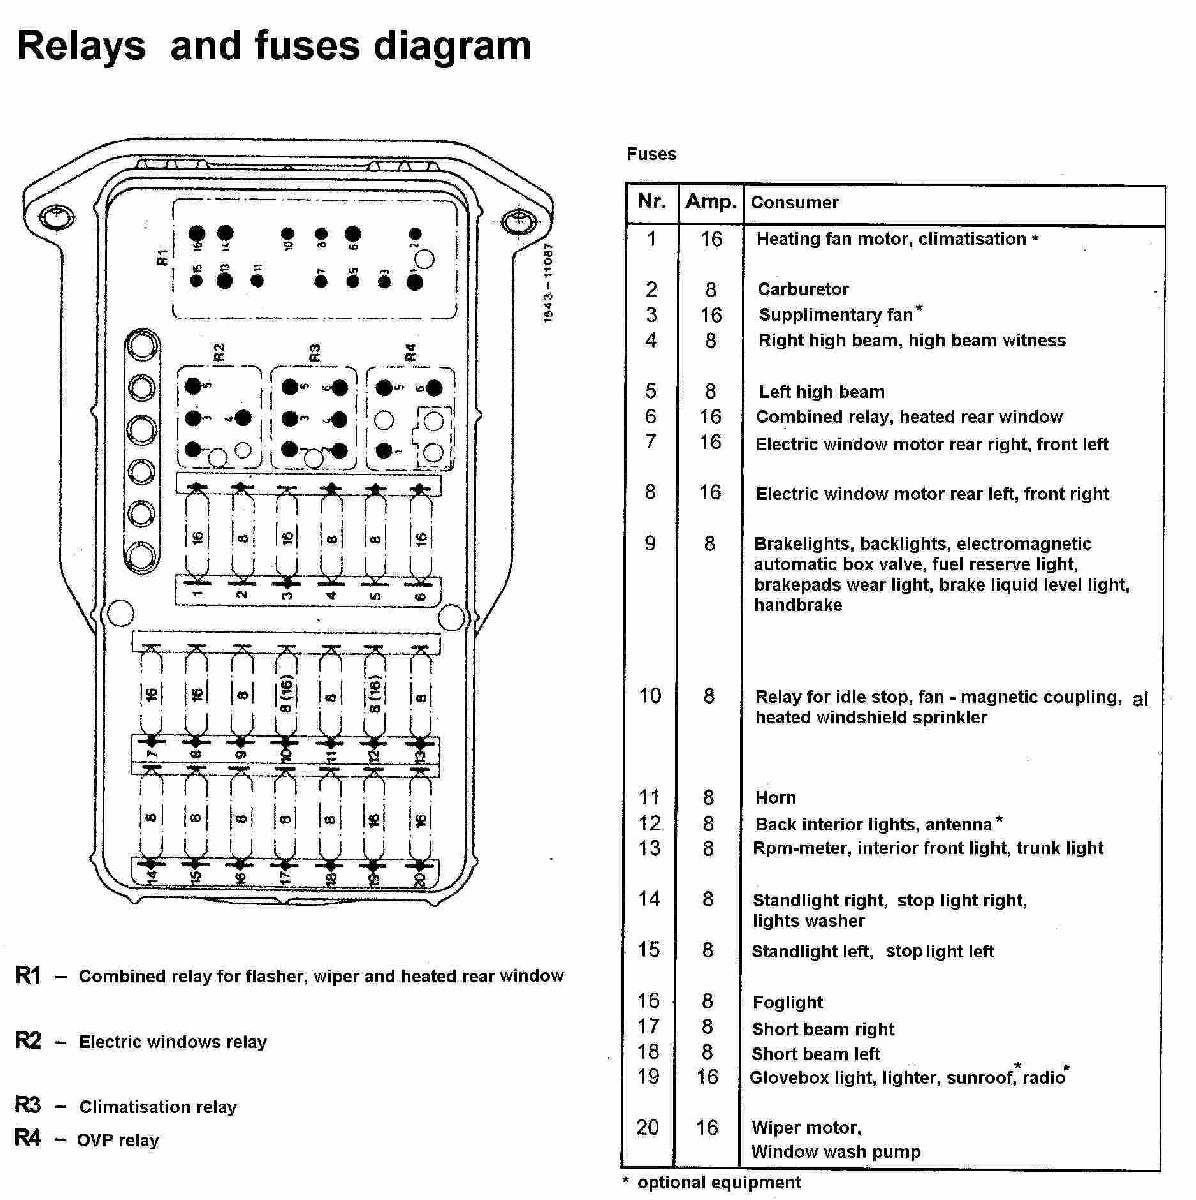 hight resolution of addition mercedes benz w114 also 2010 mercedes c300 fuse box diagram mercedes w204 fuse location mercedes w204 fuse diagram